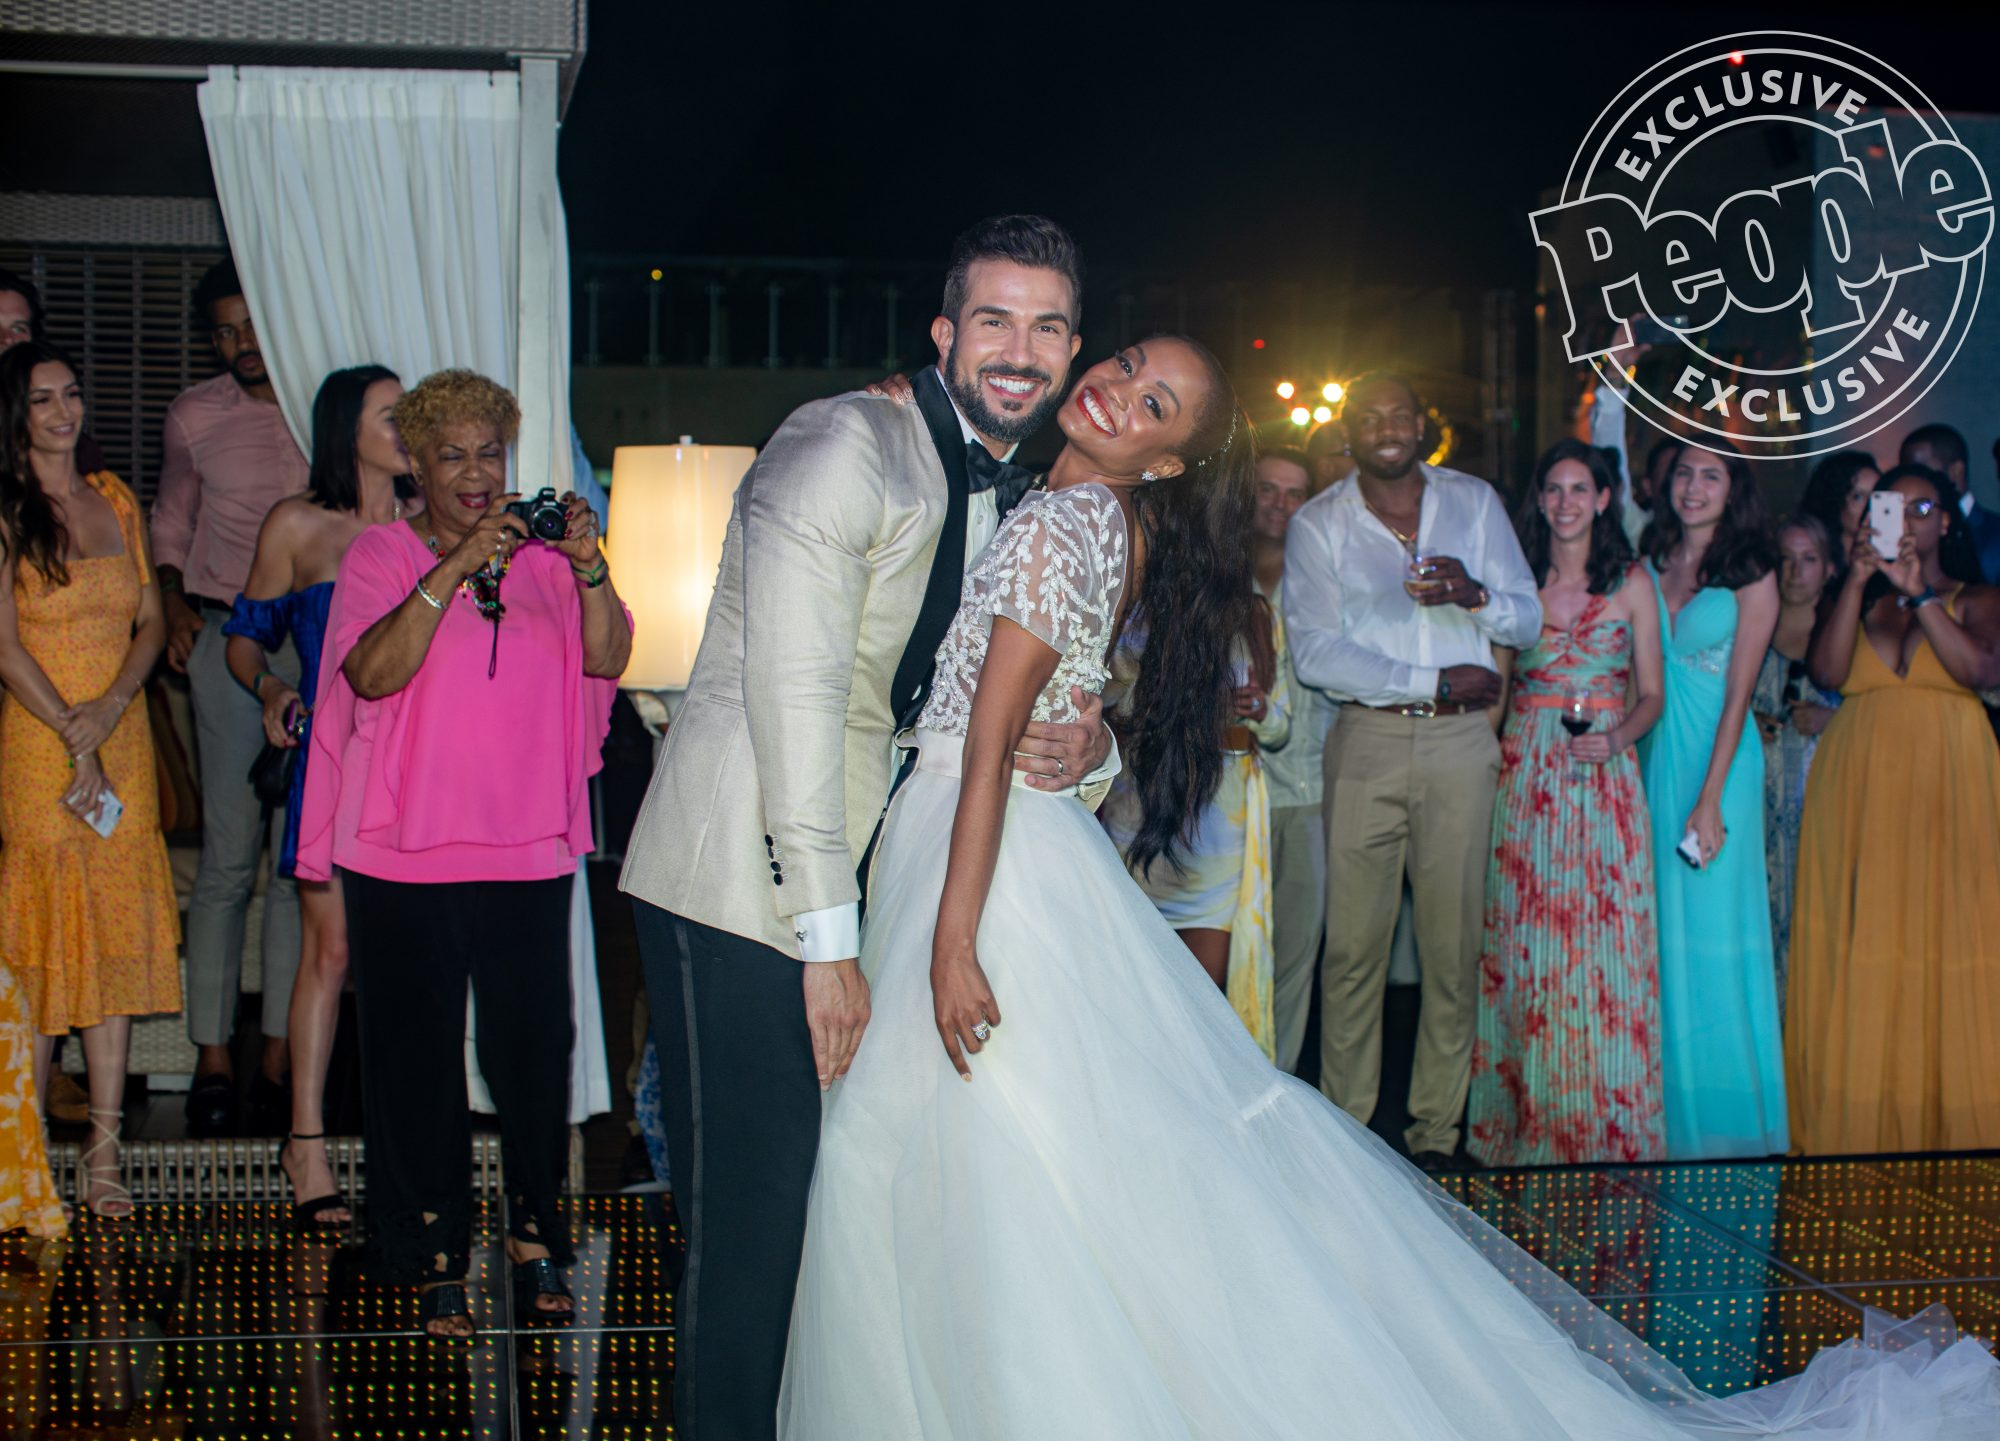 Rachel Lindsay and Bryan Abasolo Share Details of Their Island